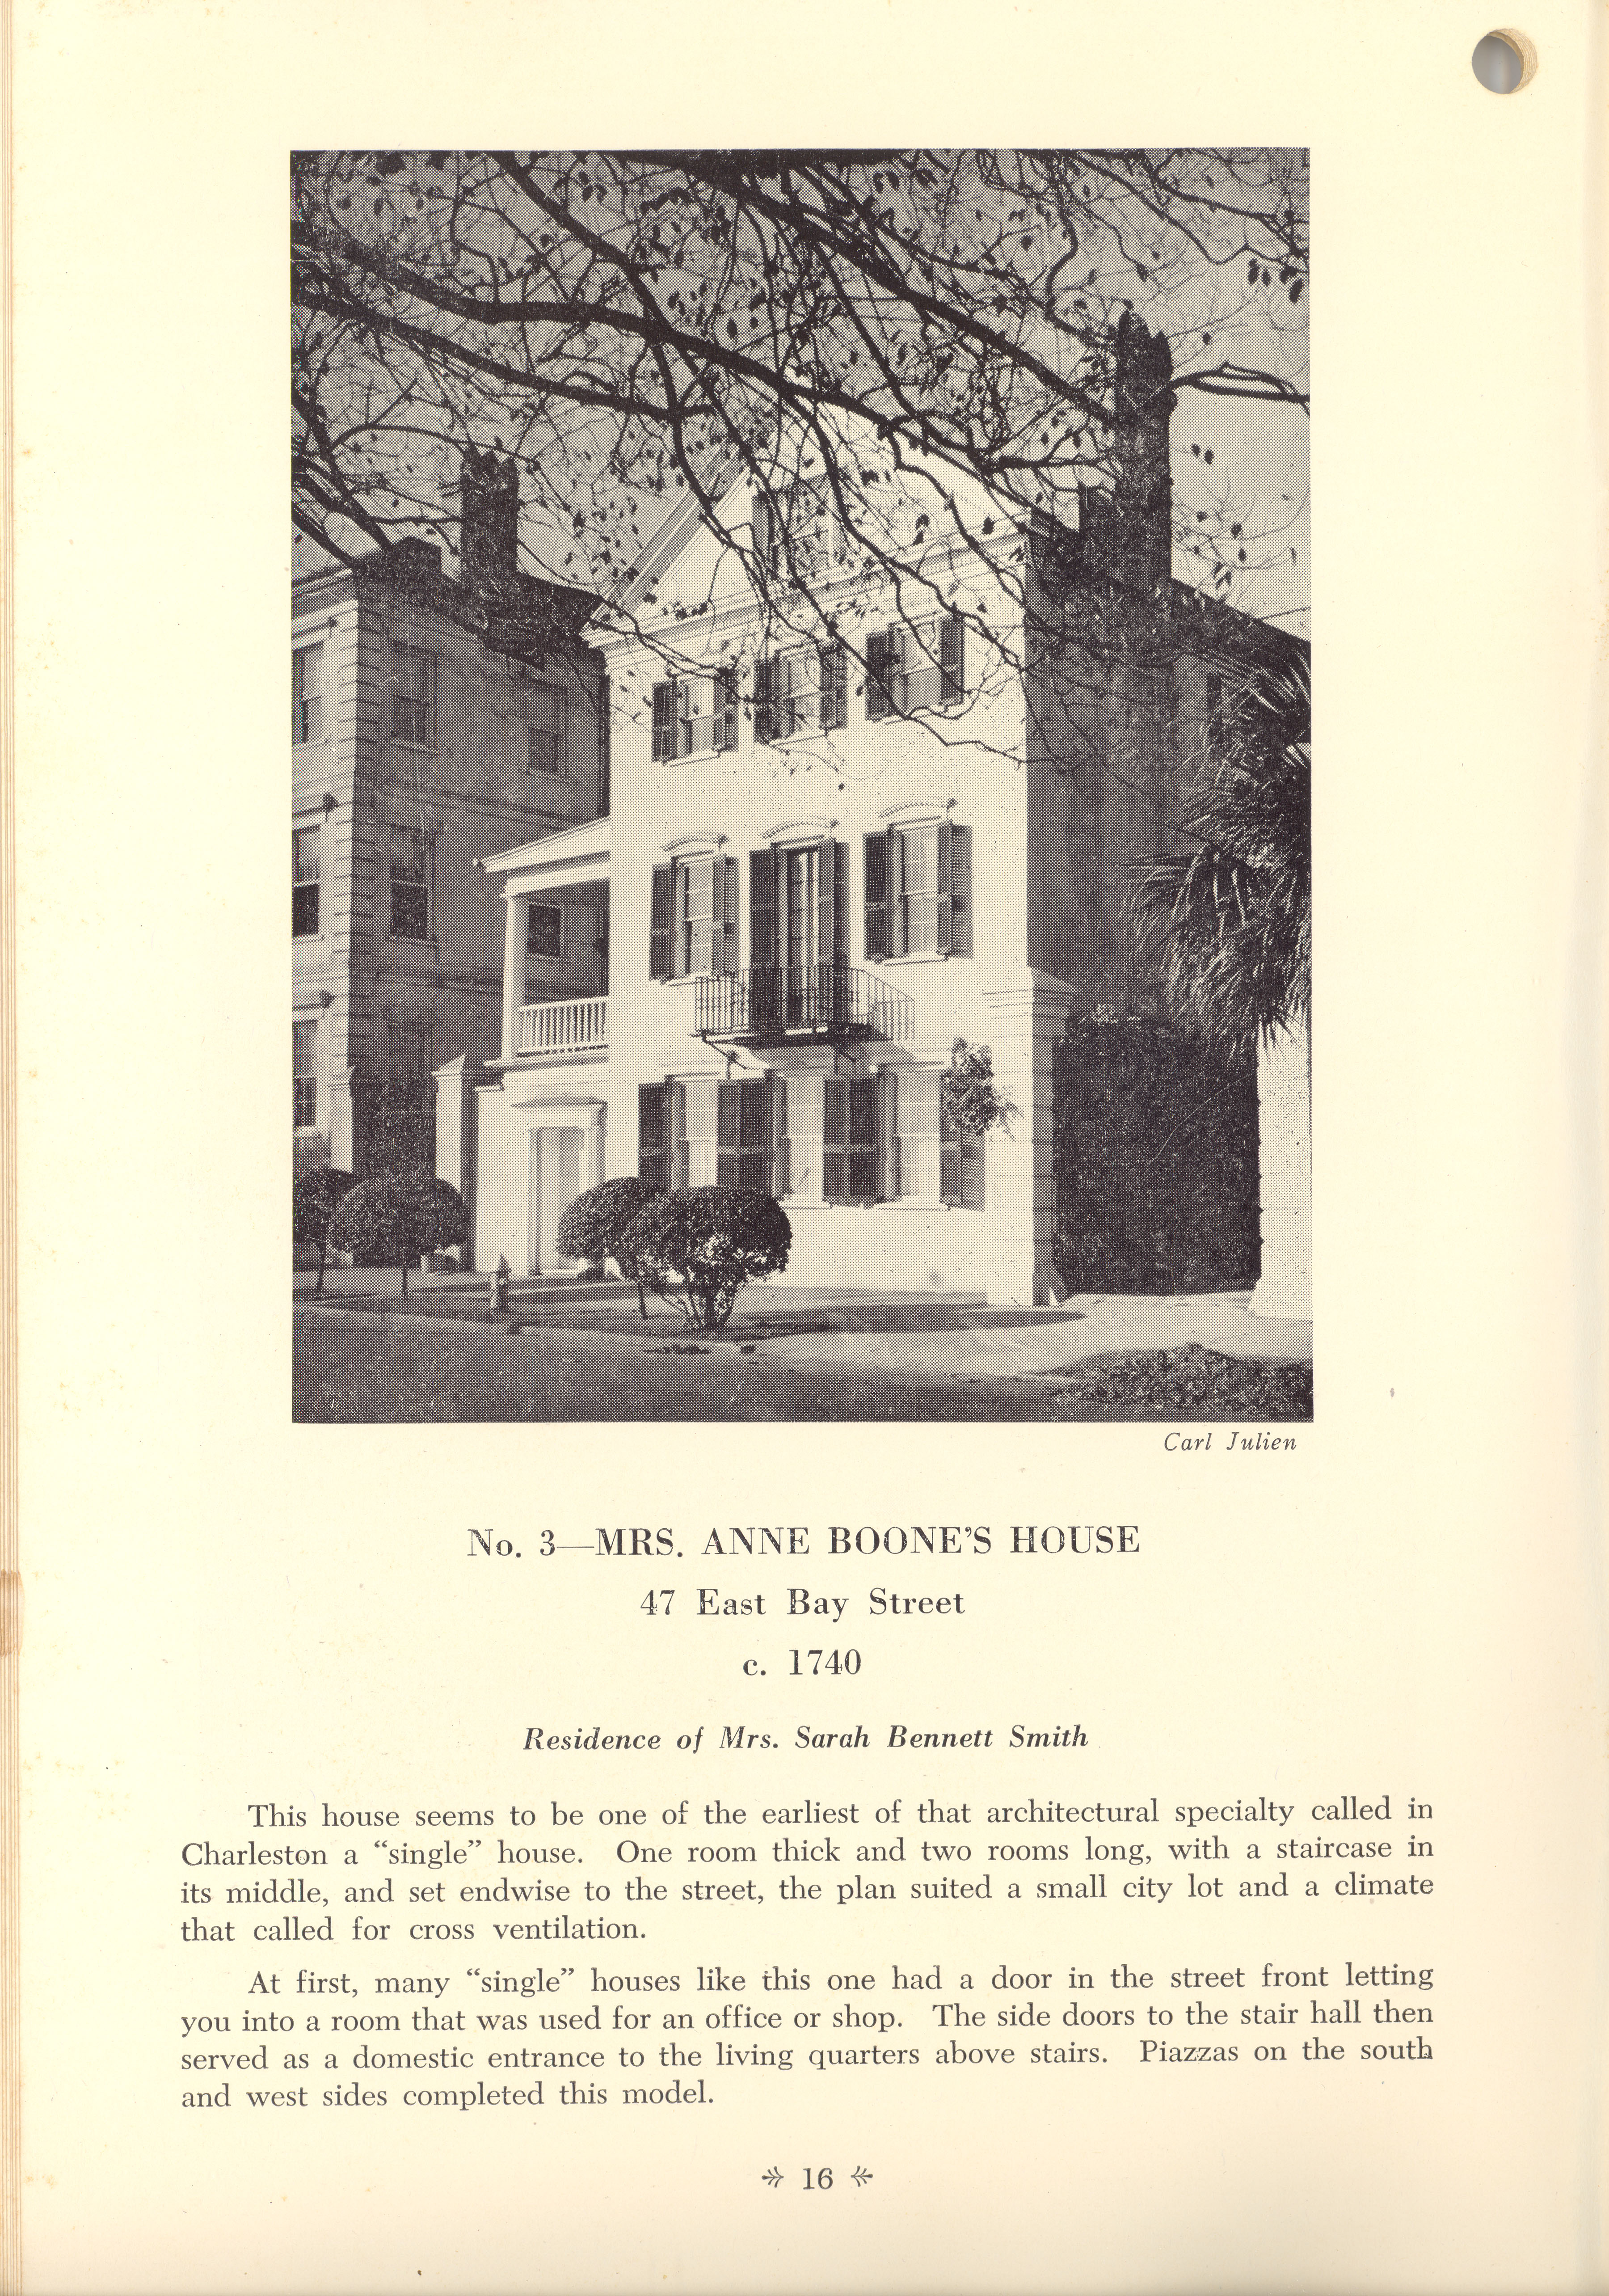 Page 16:  No. 3 - Mrs. Anne Boone's House, 47 East Bay Street, c. 1740